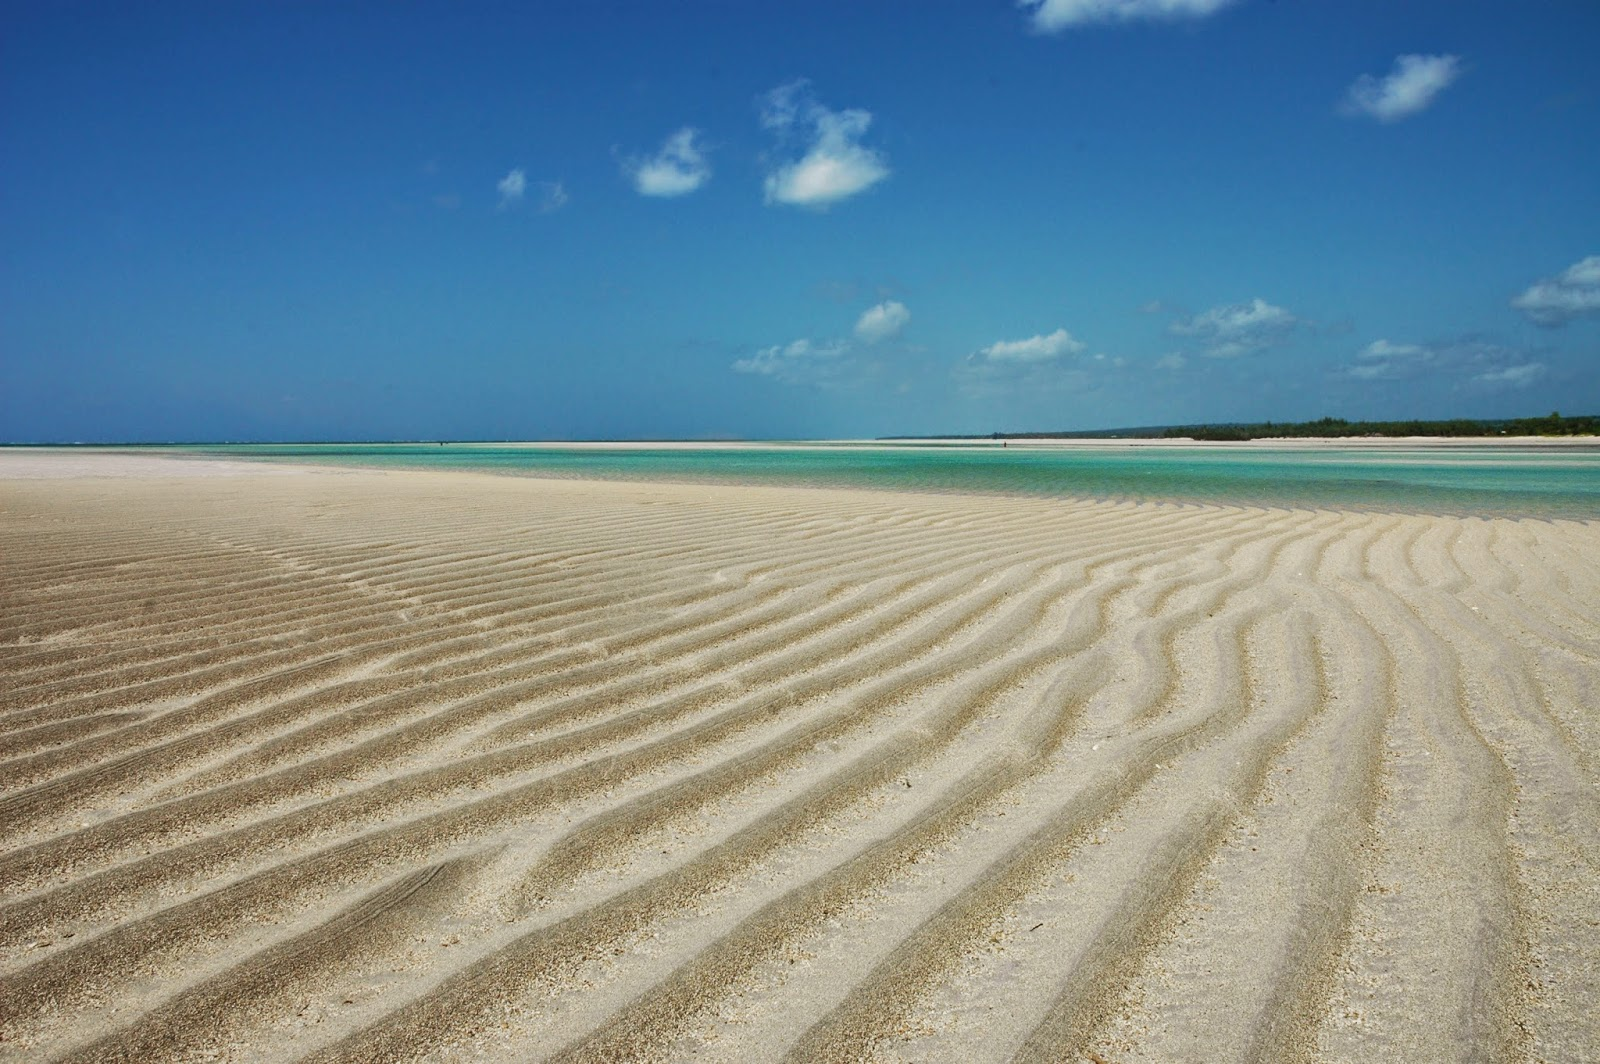 Murrebue, Lagoon, Mozambique, Pemba, Beach, Low tide